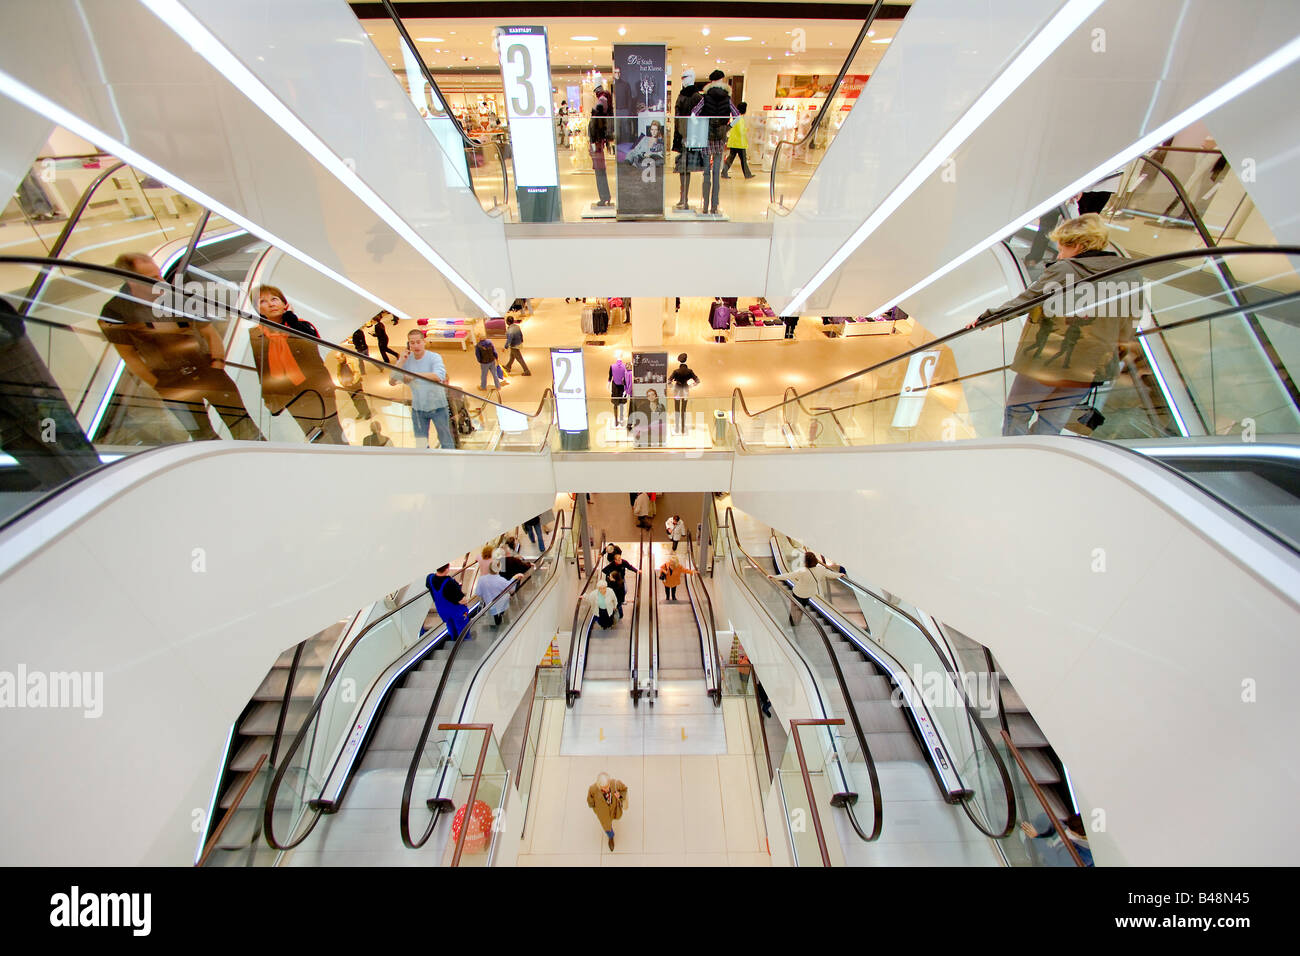 Escalators in a newly renovated department store of the Karstadt Warenhaus GmbH in Hamburg, Germany - Stock Image